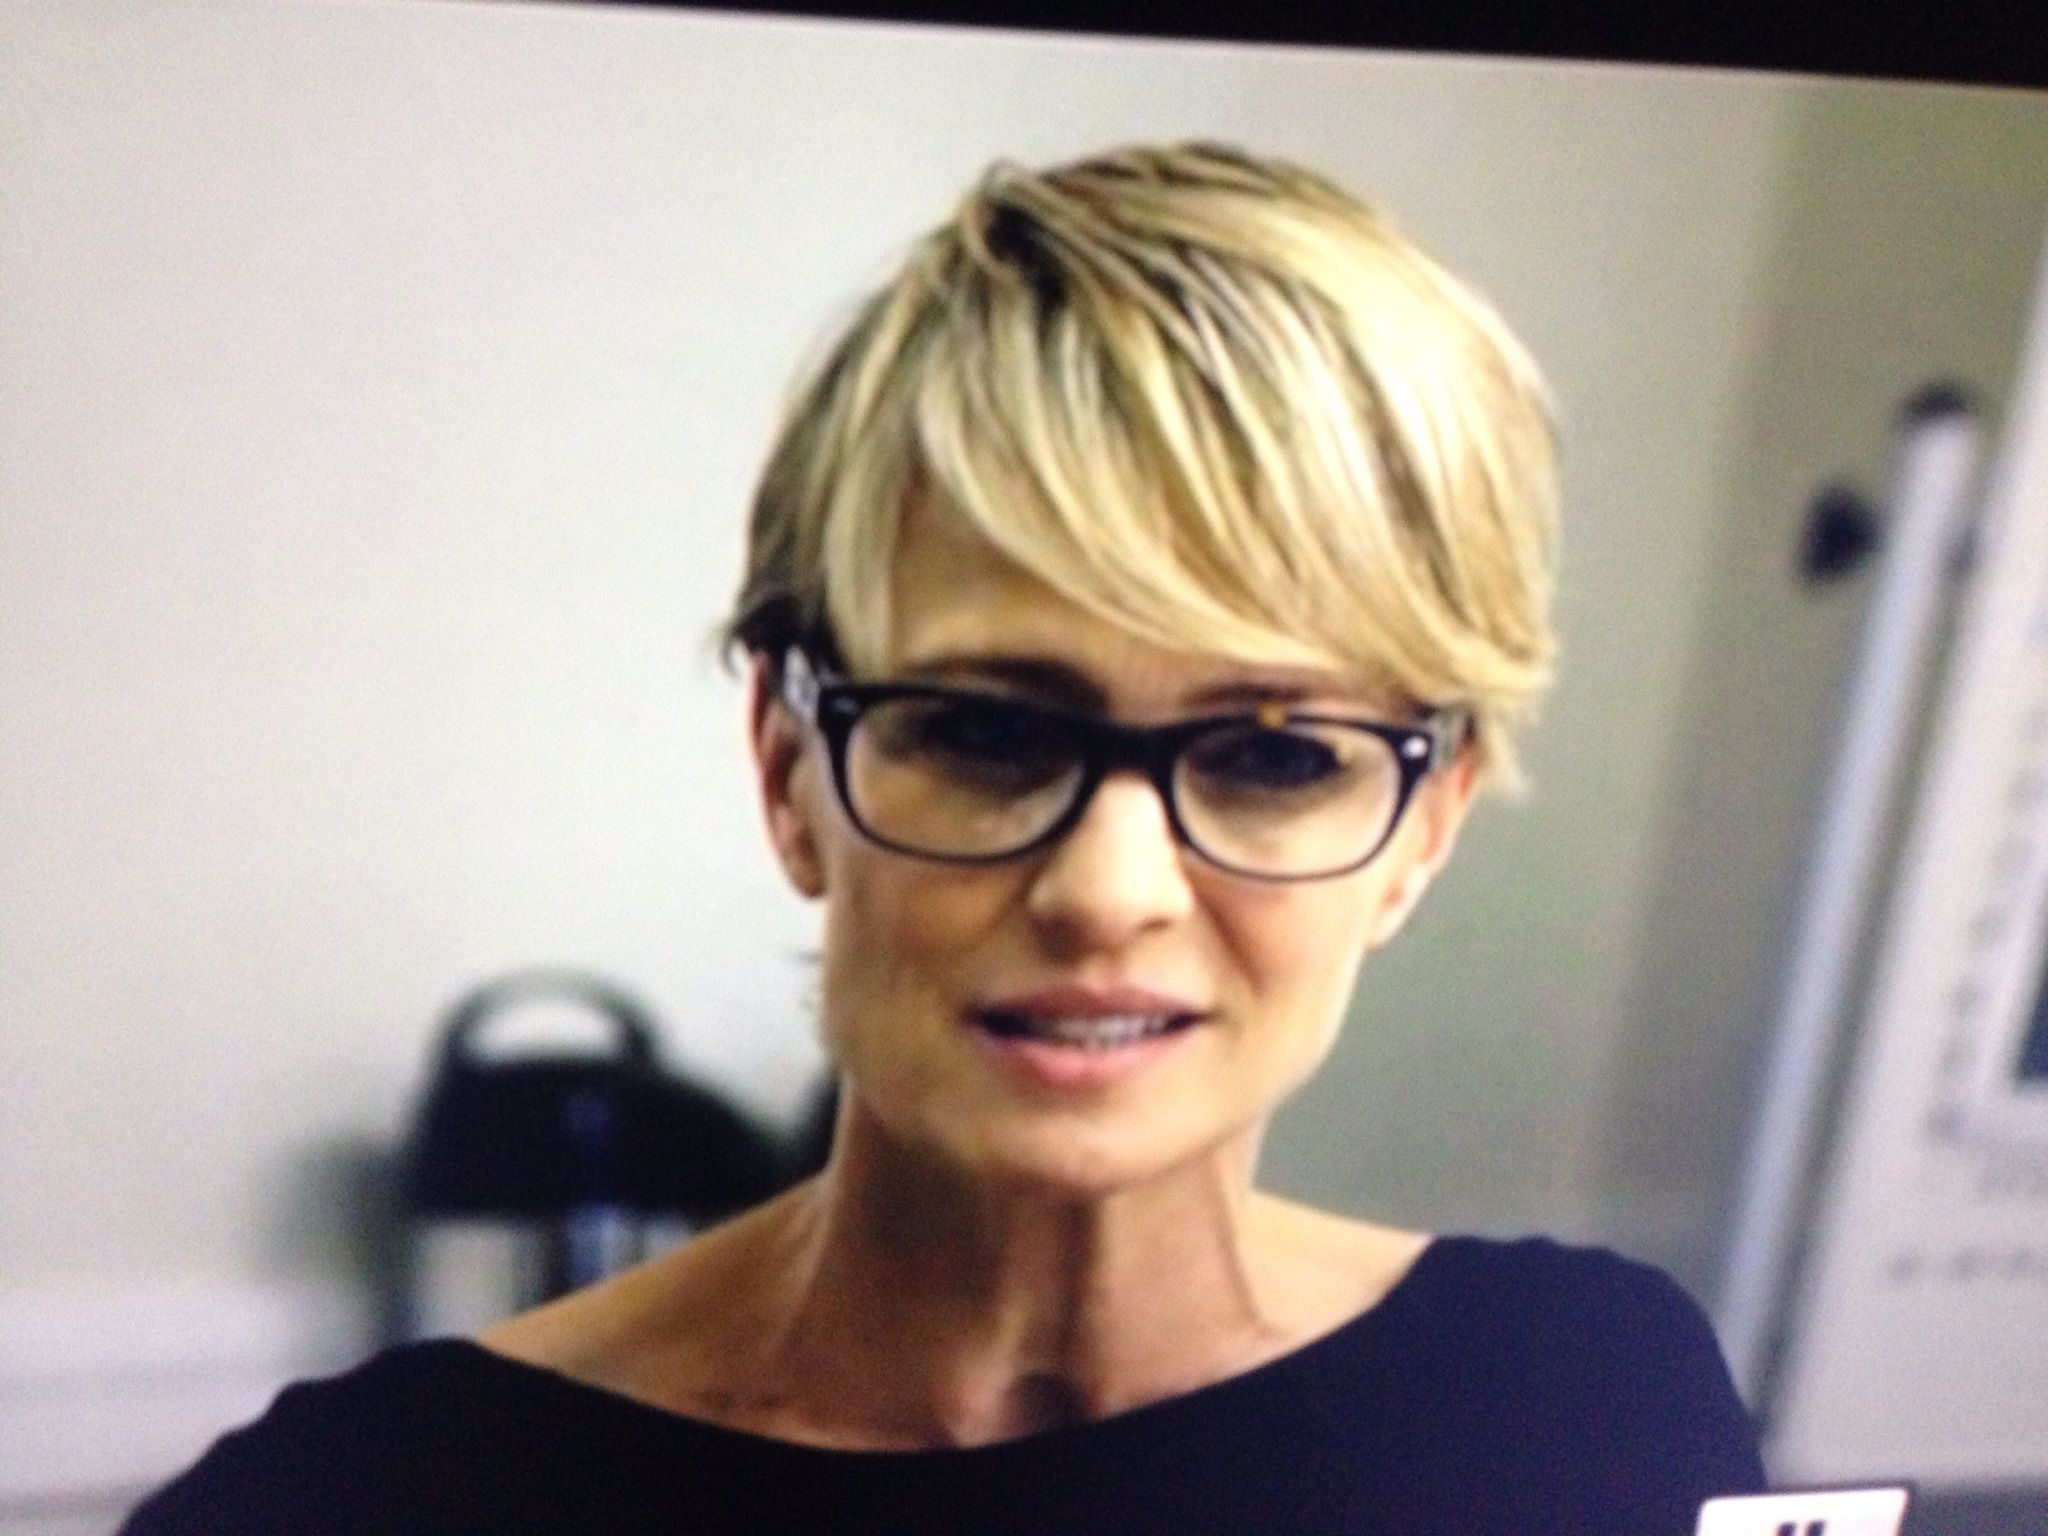 house of cards hair. i love robin wright's look